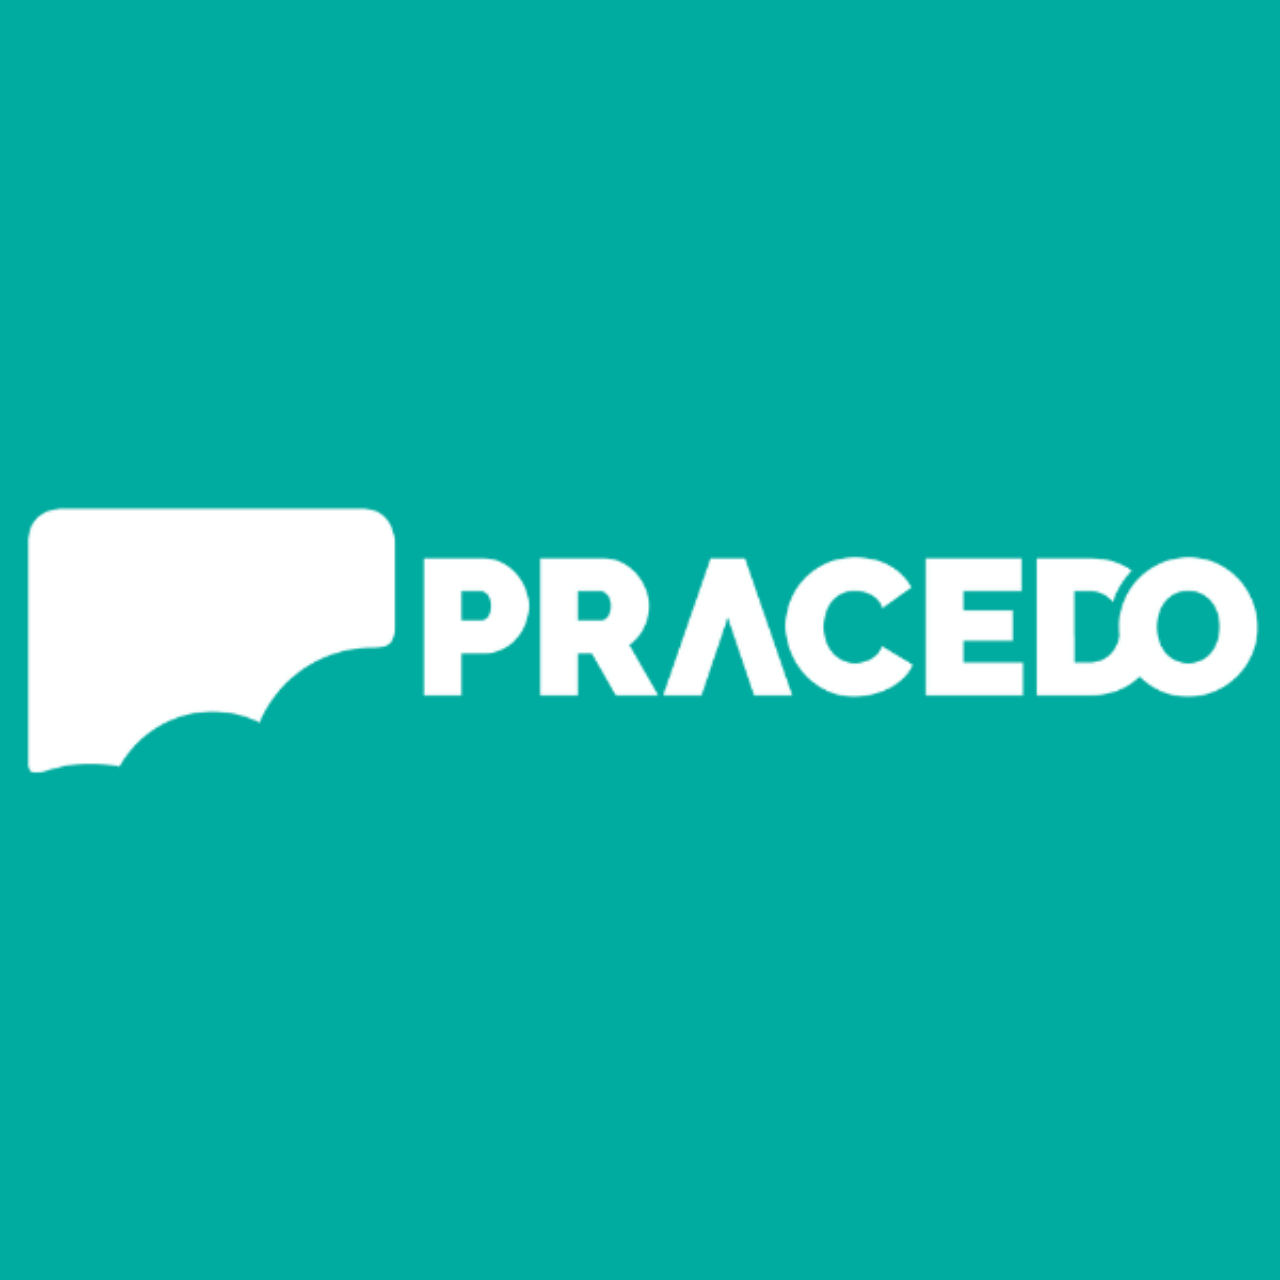 The Pracedo Logo on a green background